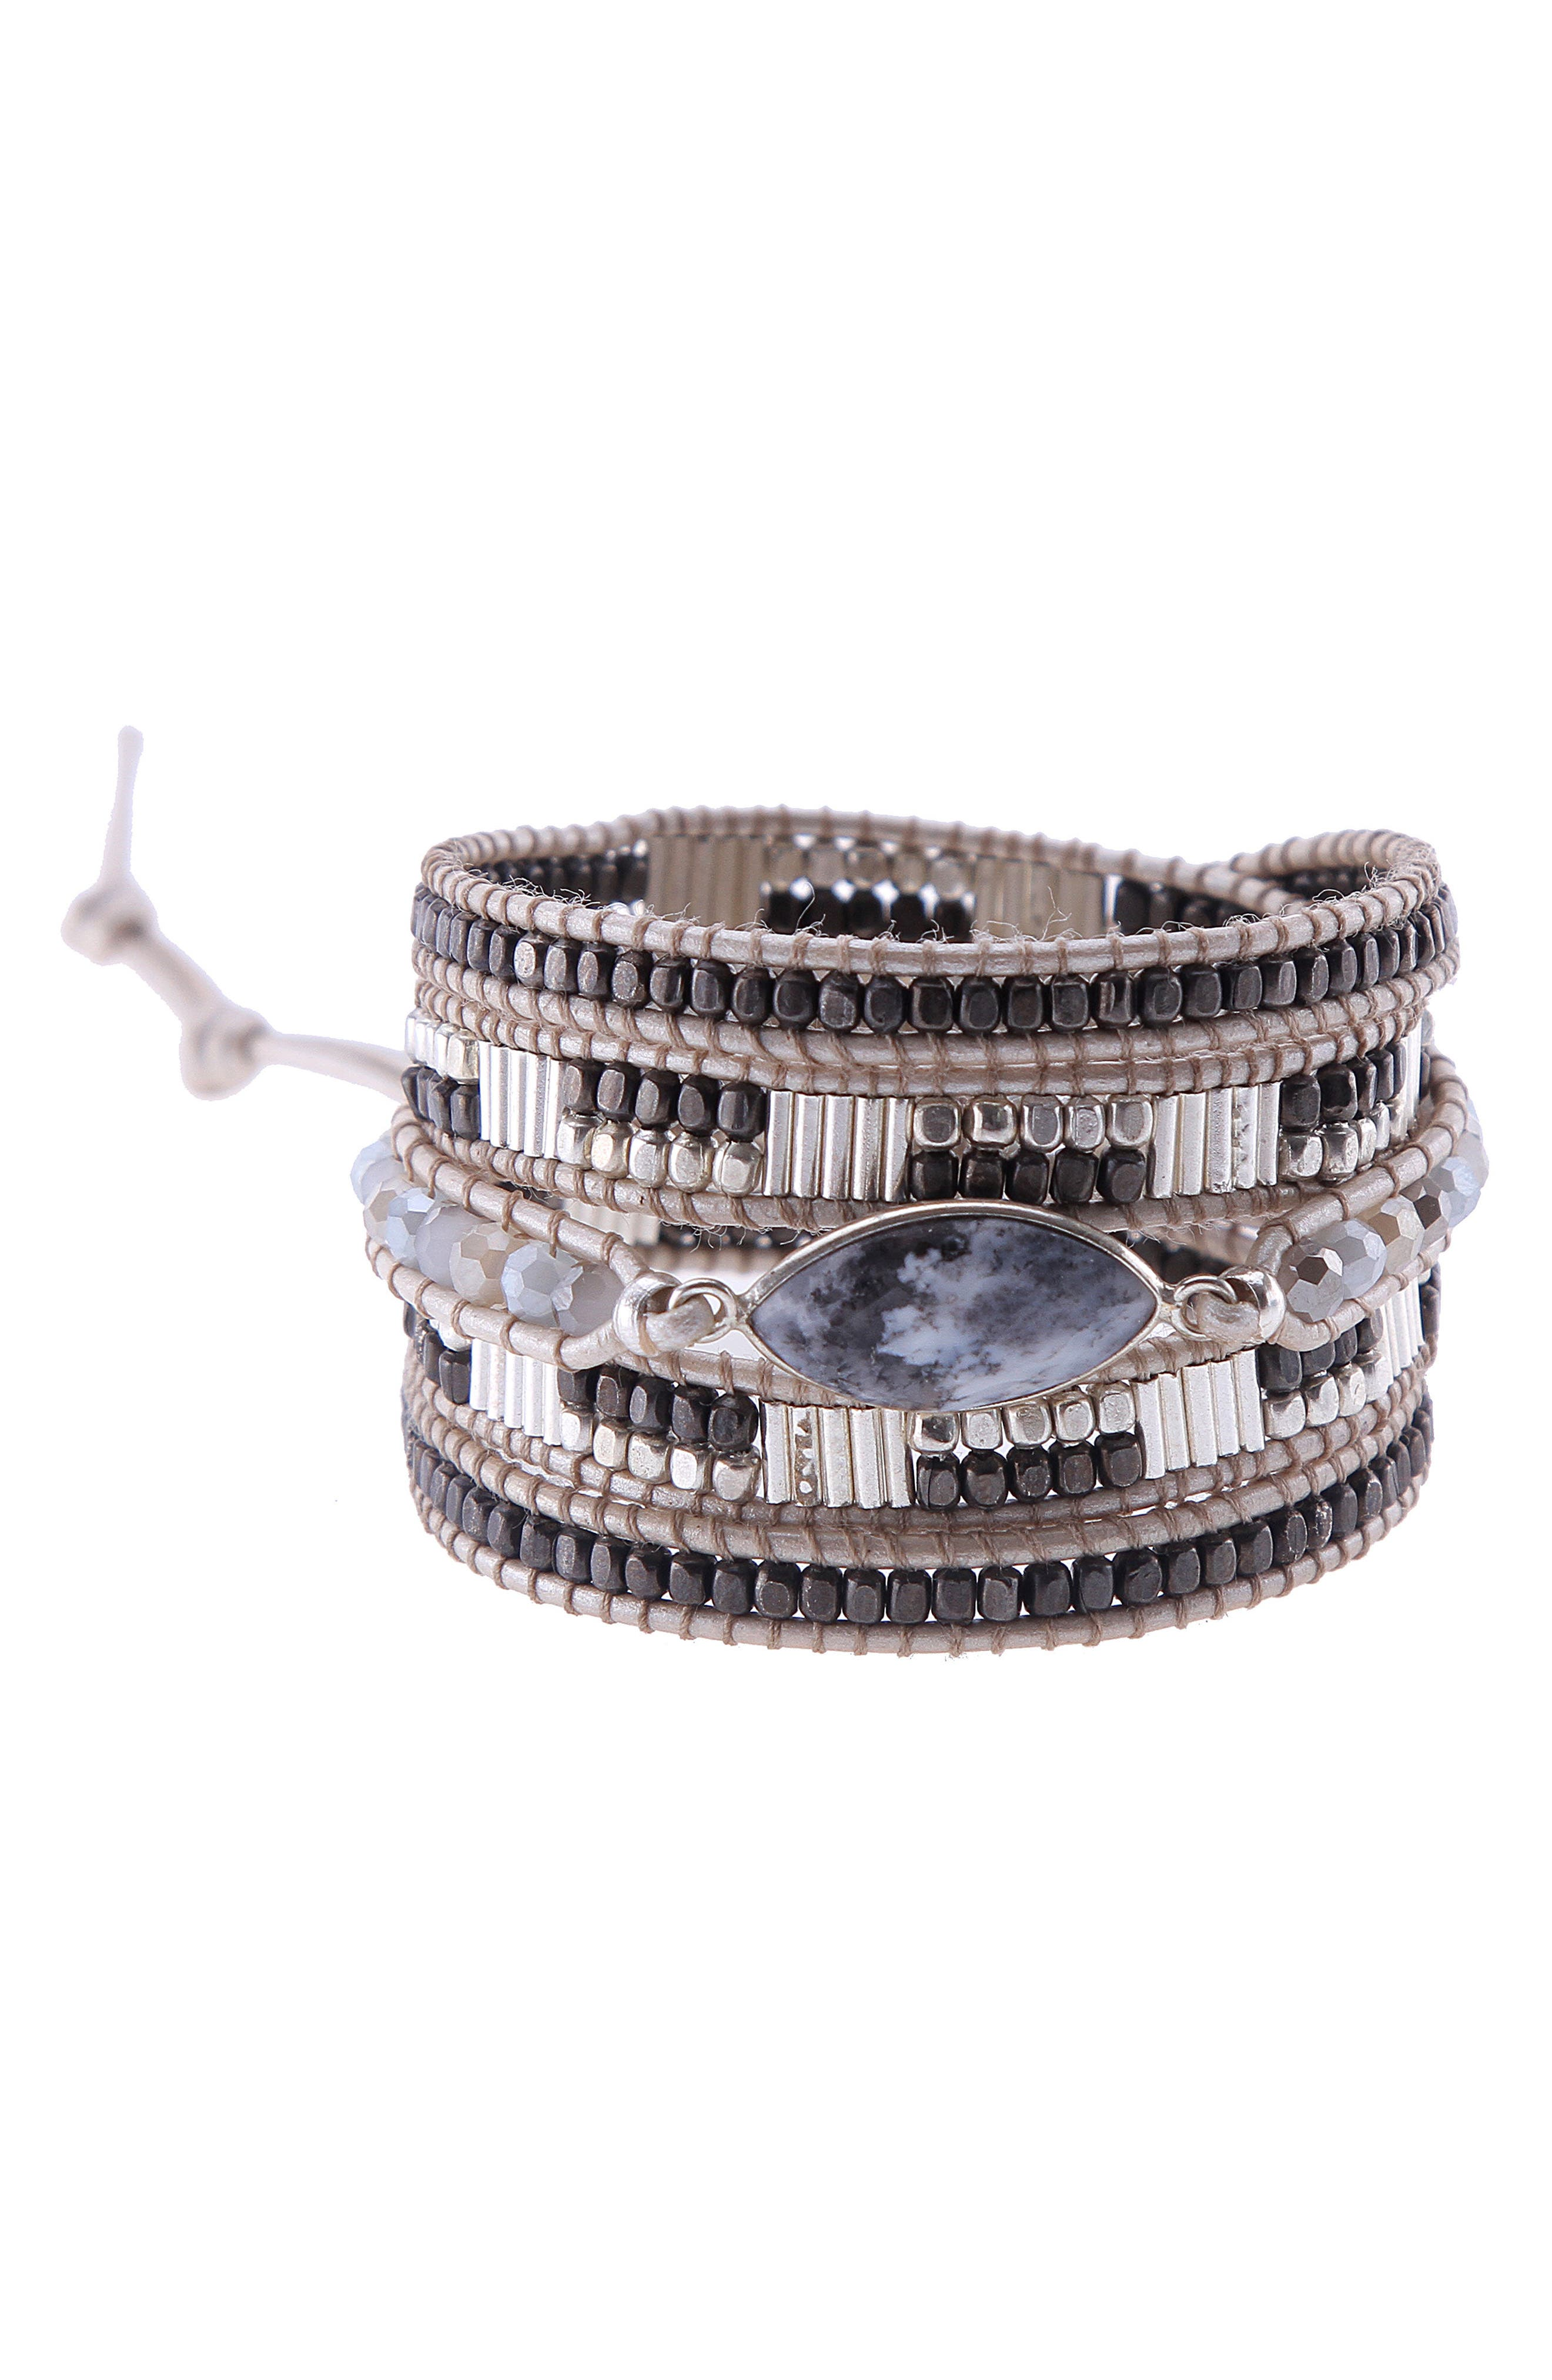 Beaded Agate Wrap Bracelet,                         Main,                         color, 100